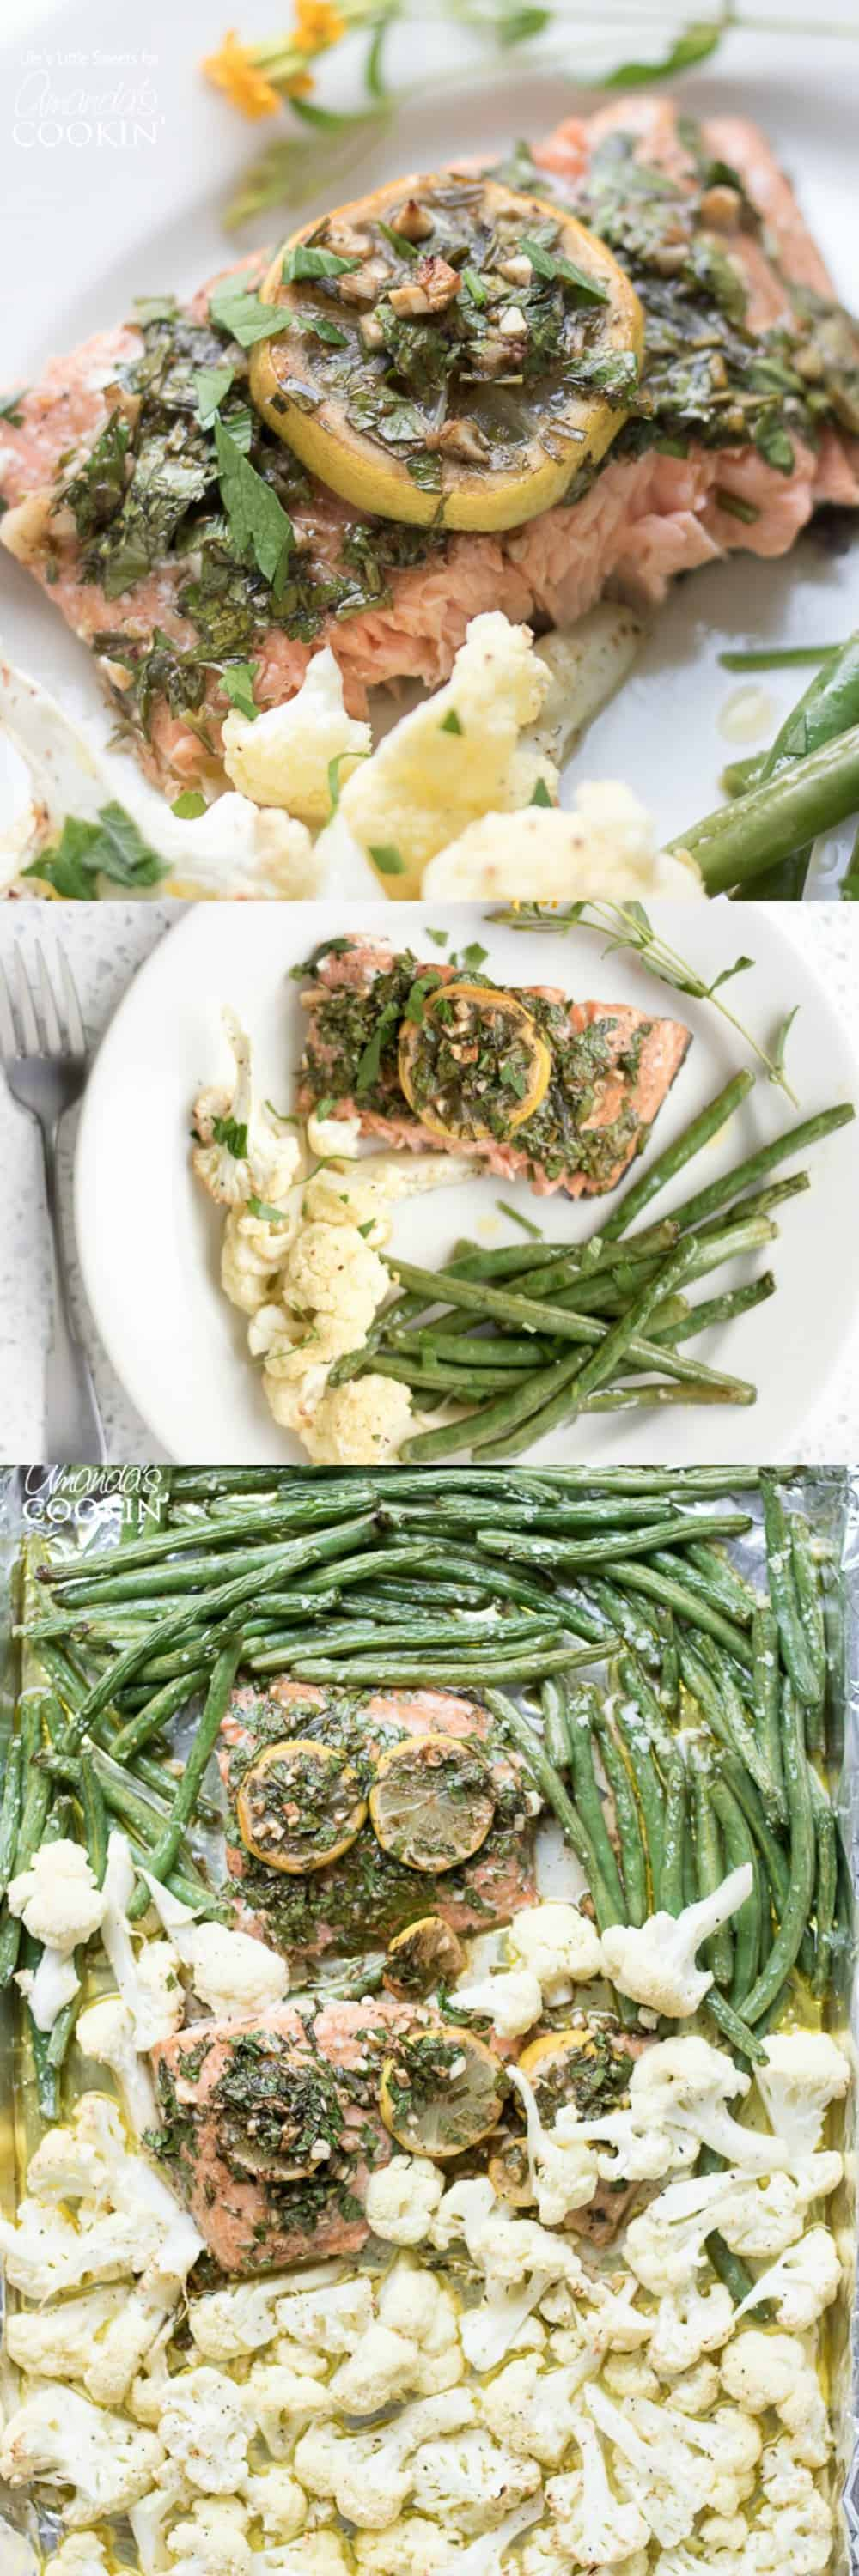 This Sheet Pan Salmon Dinner with lemon and tarragon is served with savory roasted green beans and cauliflower. A 30-minute recipe you'll love!